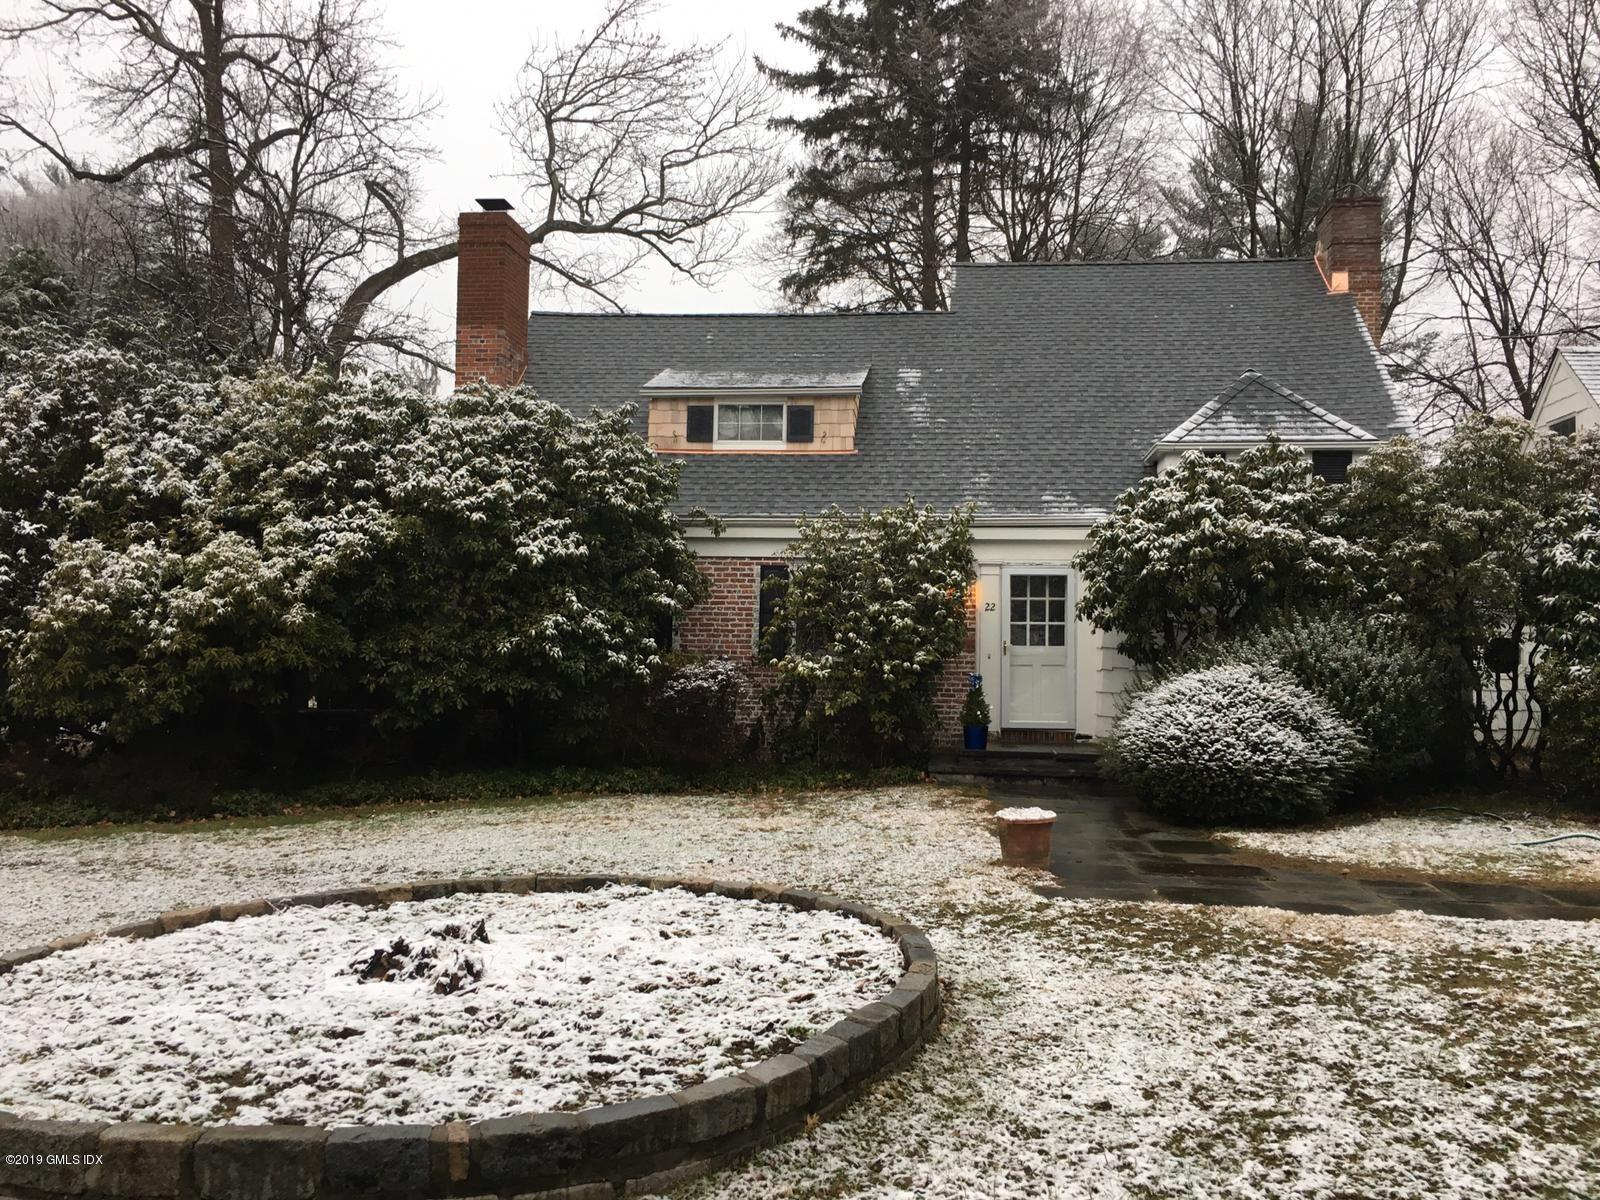 22 Stanwich Lane,Greenwich,Connecticut 06830,5 Bedrooms Bedrooms,3 BathroomsBathrooms,Single family,Stanwich,105249